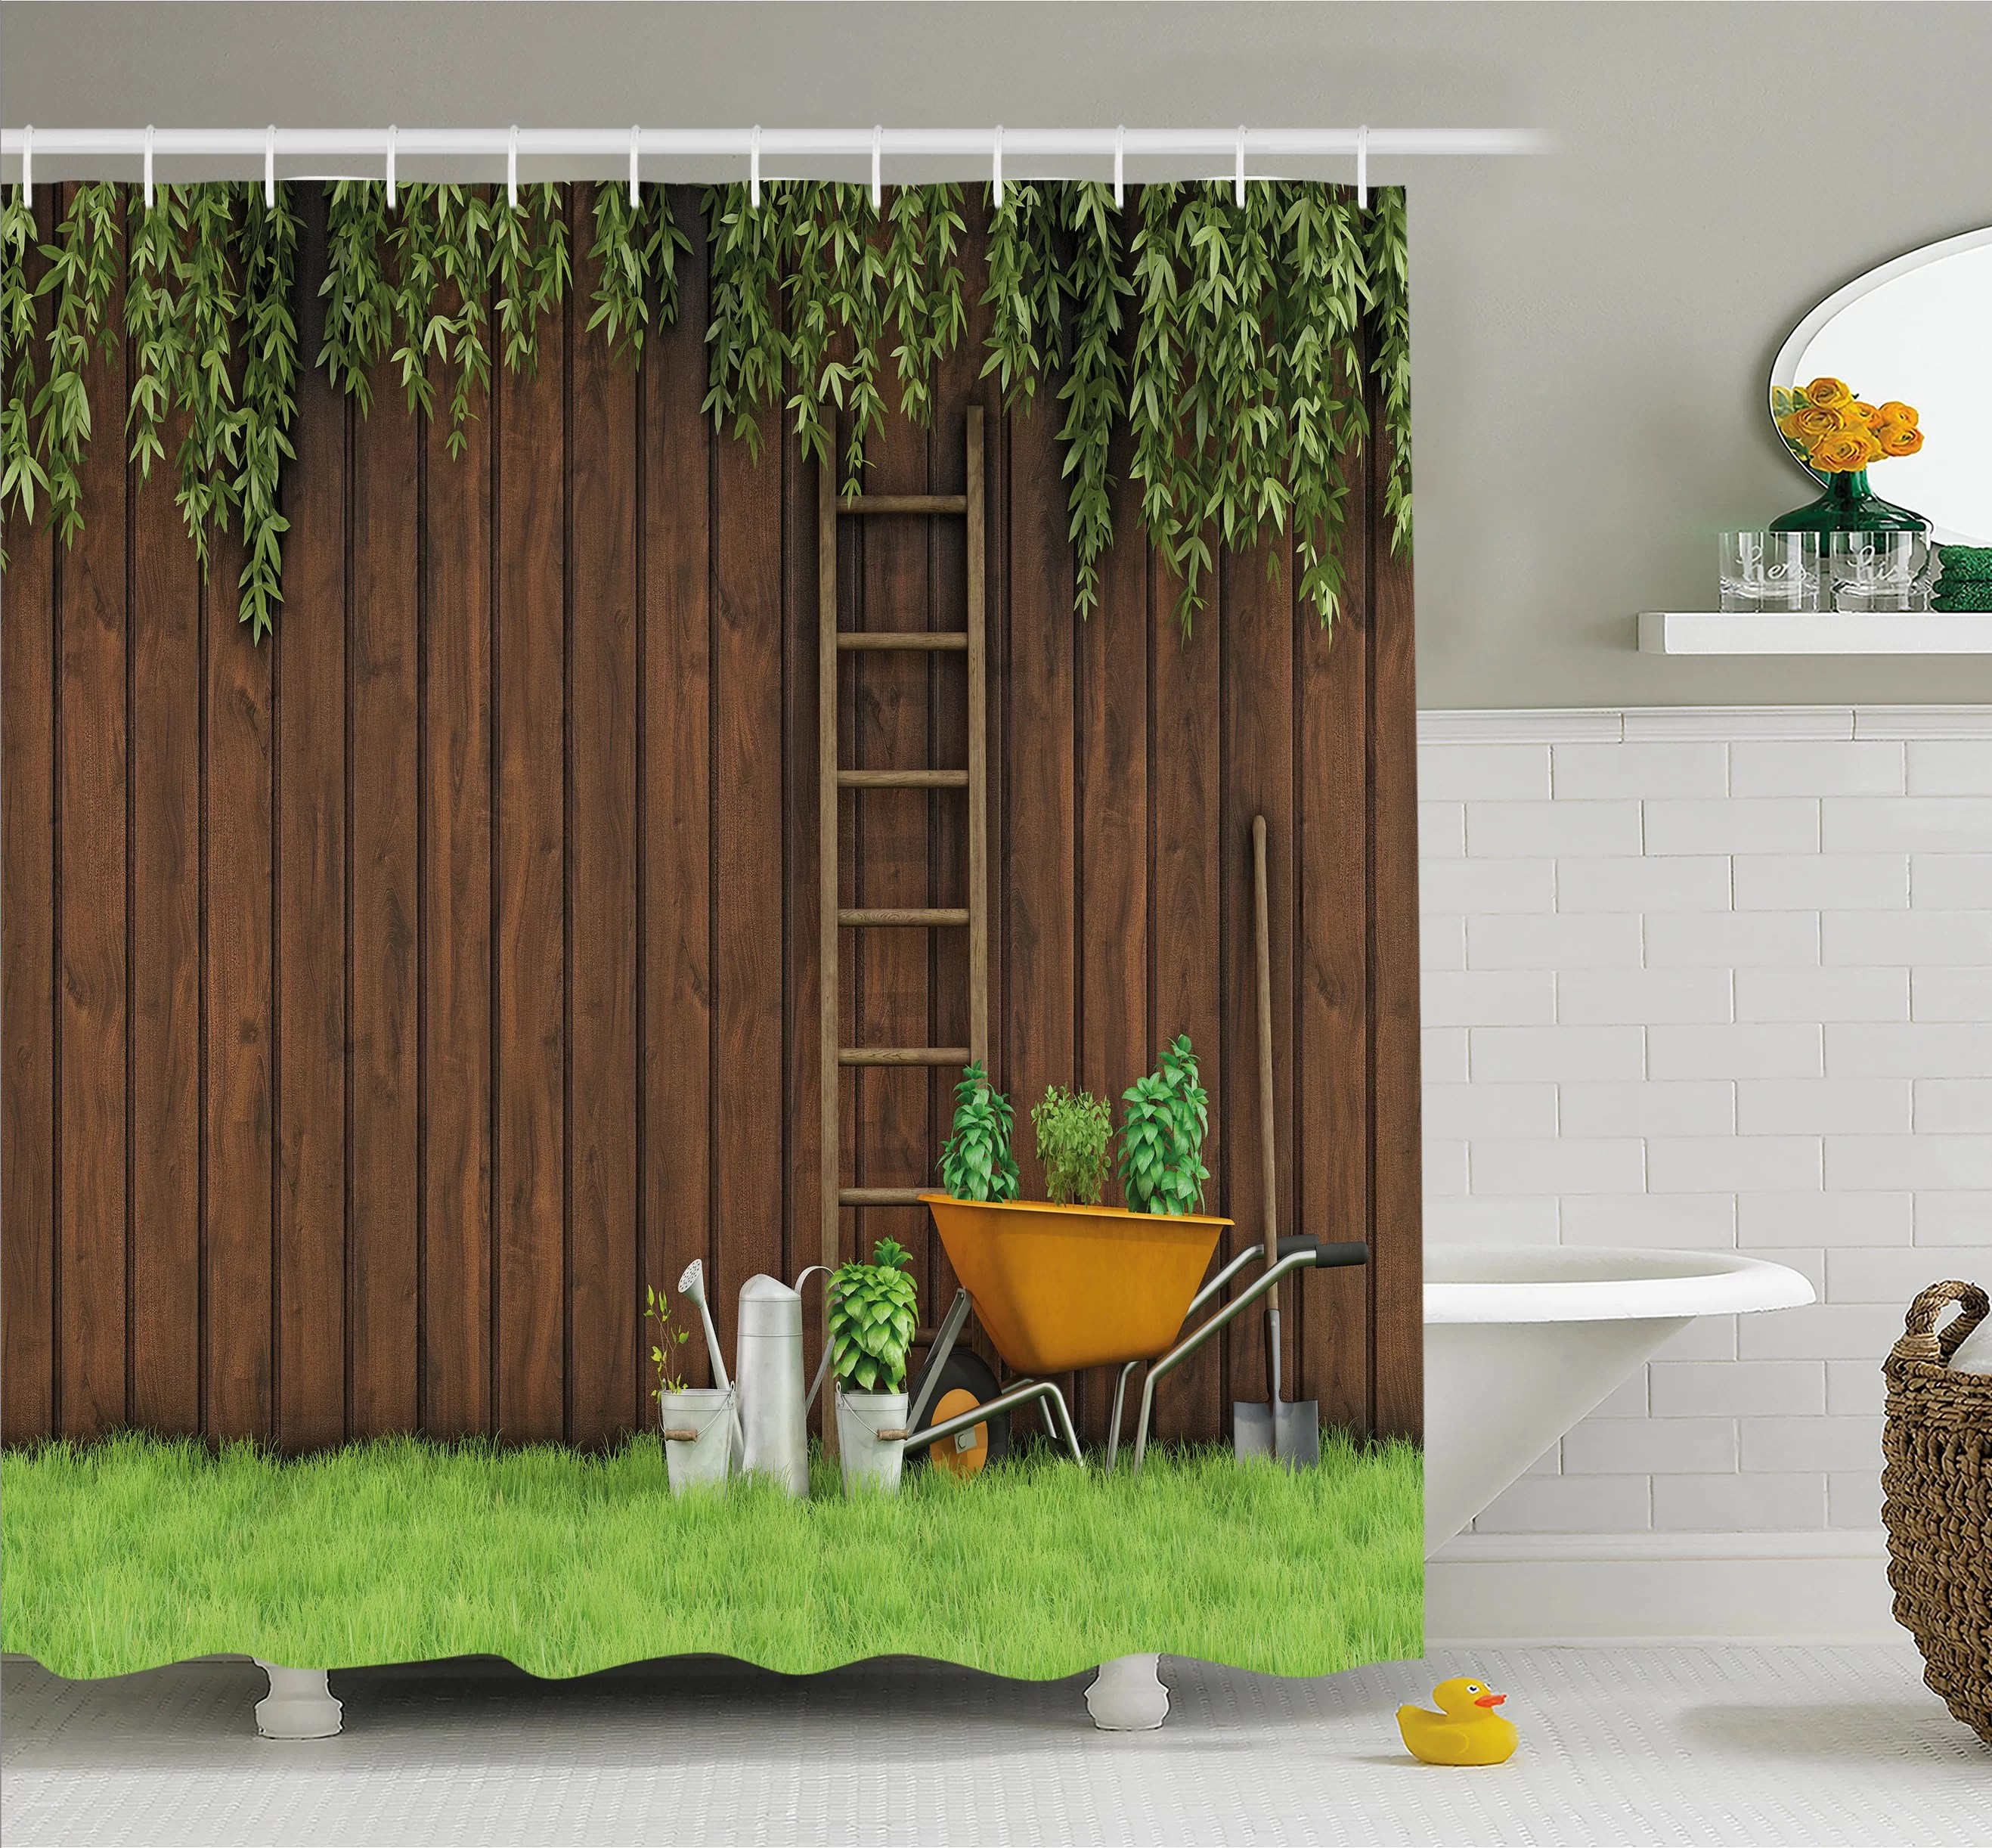 Backyard Shower Farm House Gardening Material Tools On The Backyard With Shovel And Bucket Print Shower Curtain Set